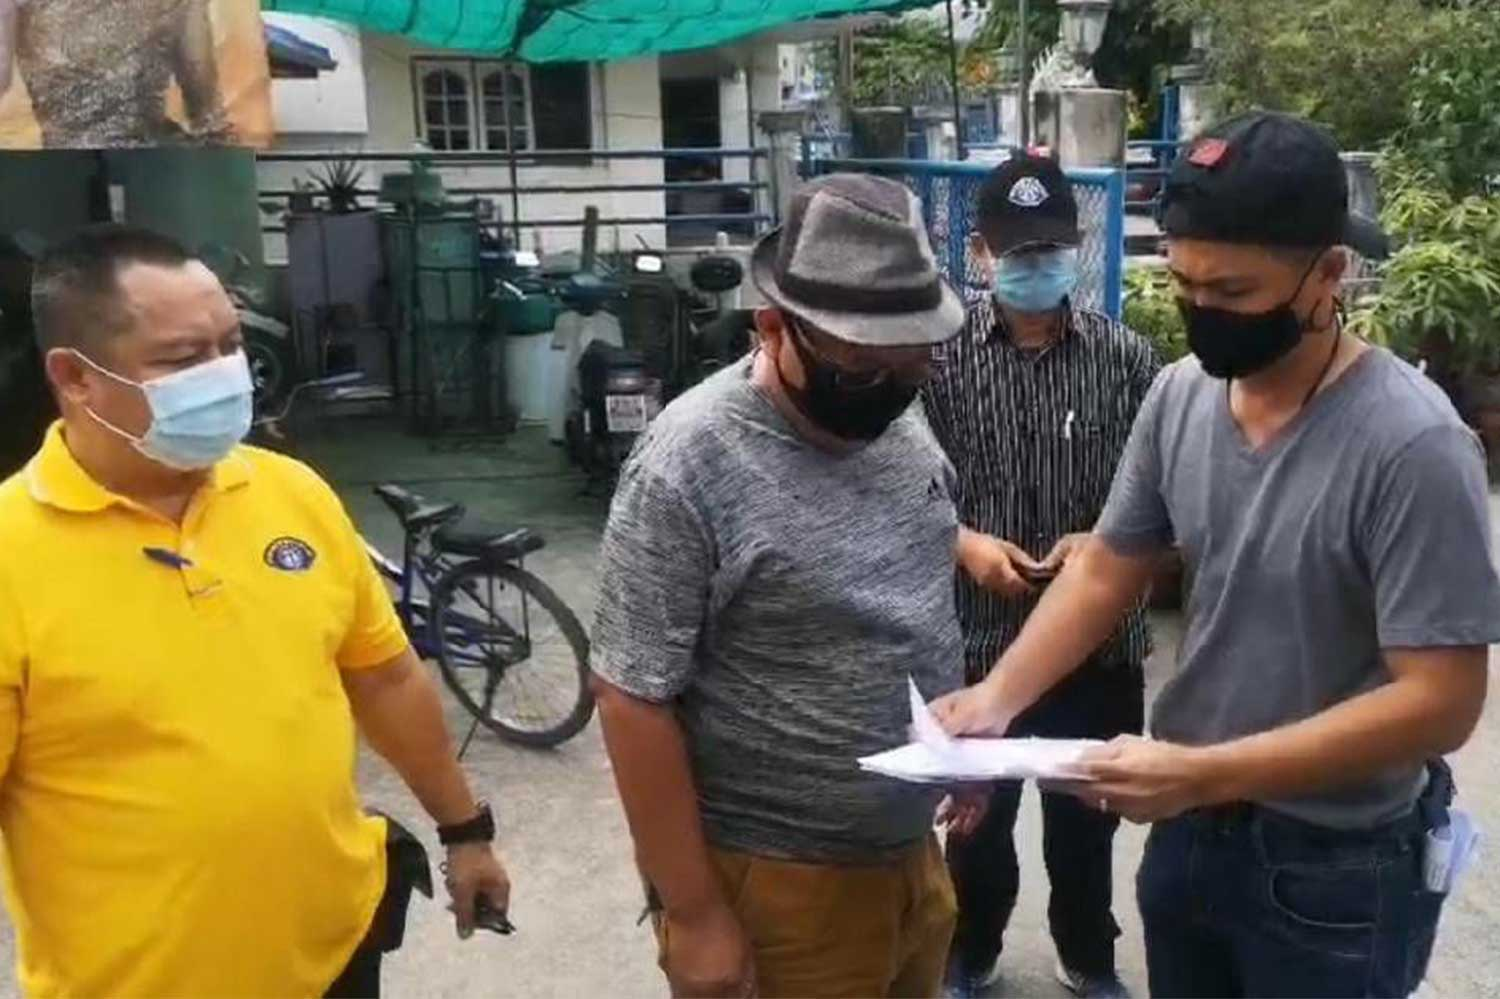 Plainclothes police show an arrest warrant to a 56-year-old man (centre) before taking him into custody in Pak Kret district of Nonthaburi on Friday. (Photo: Crime Suppression Division)